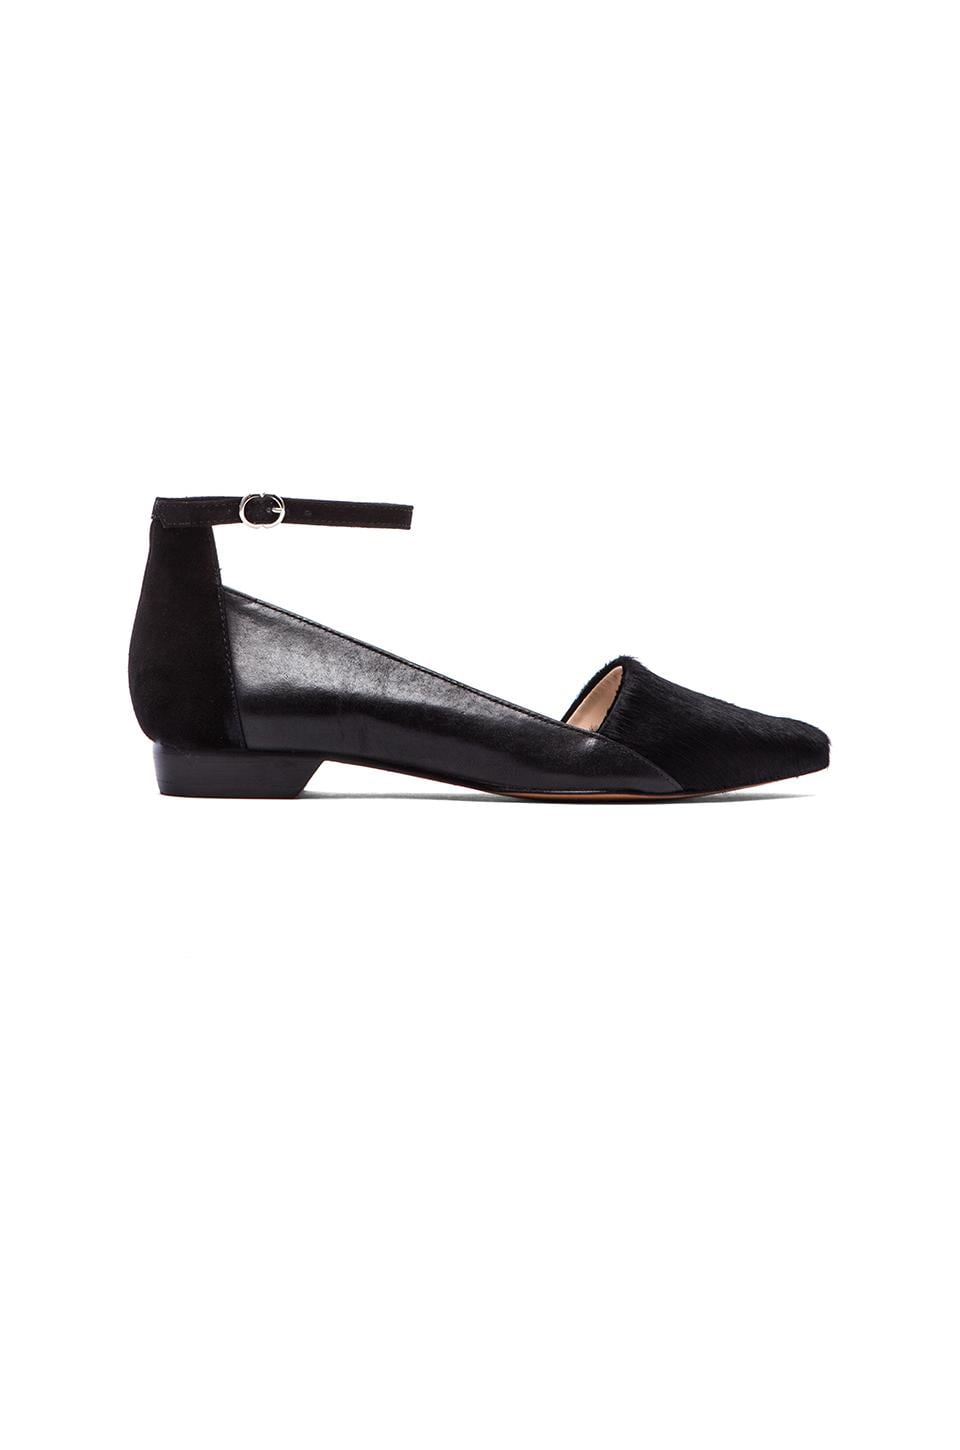 DEREK LAM 10 CROSBY Avery Flat with Calf Fur in Black Haircalf